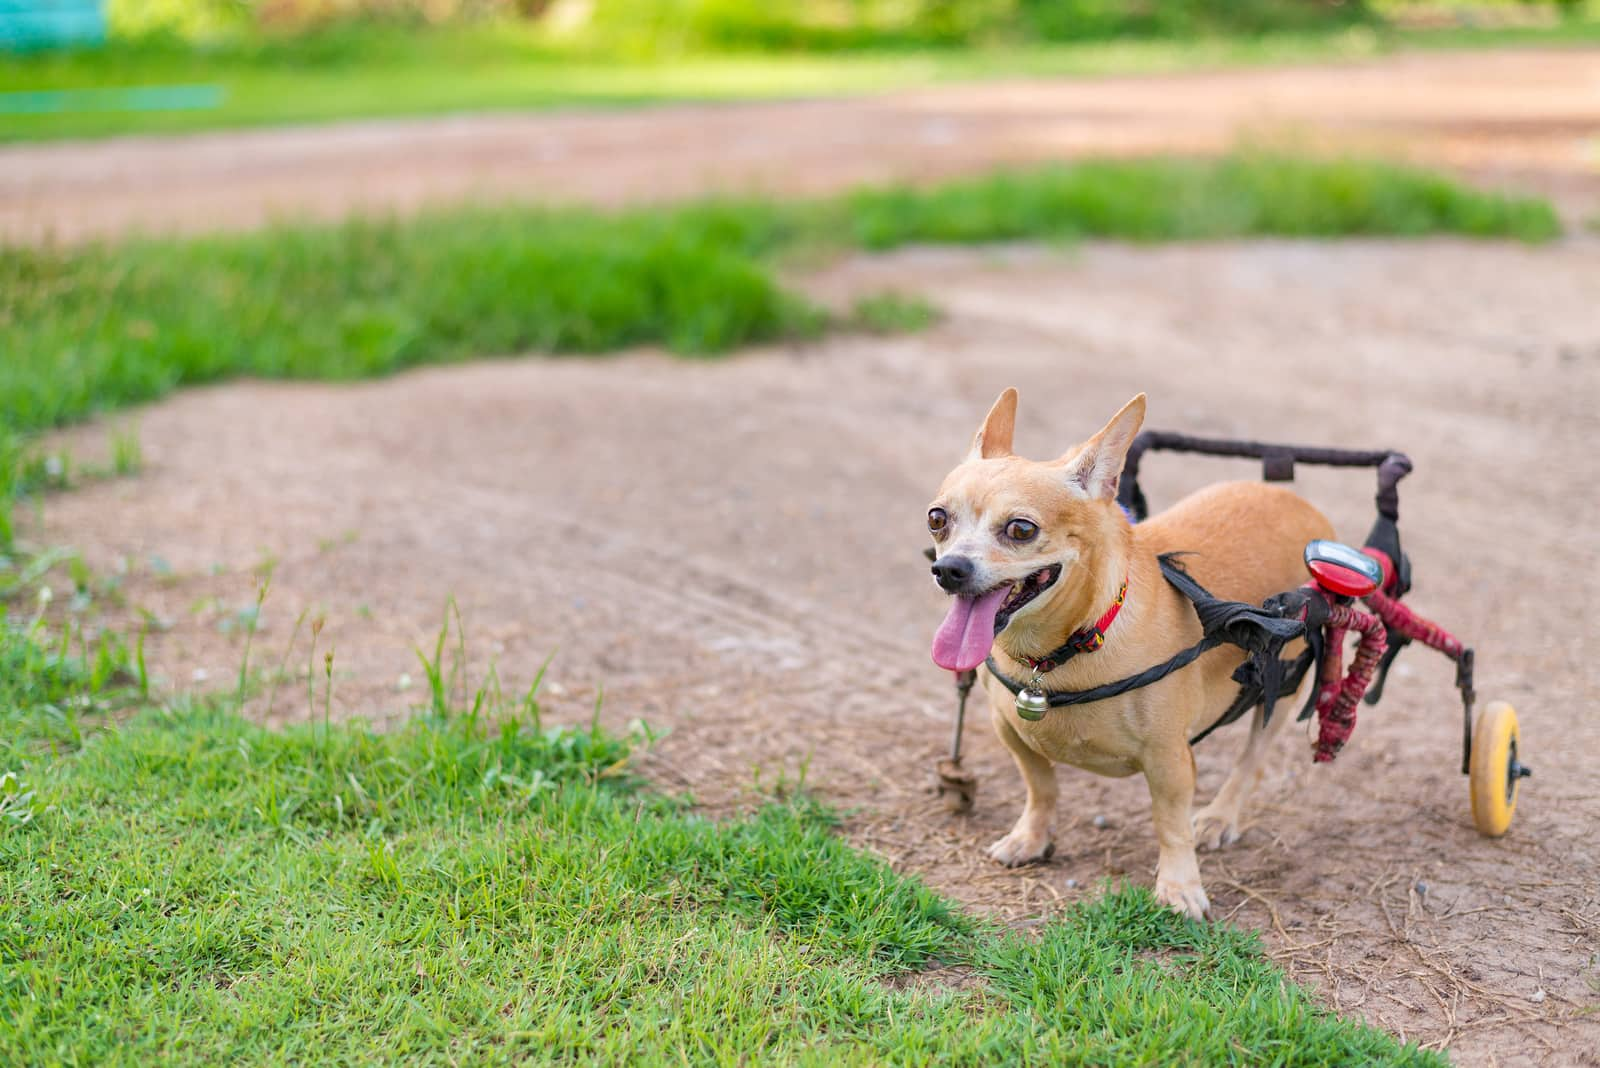 Chihuahua with dog wheelchair running in the grass.